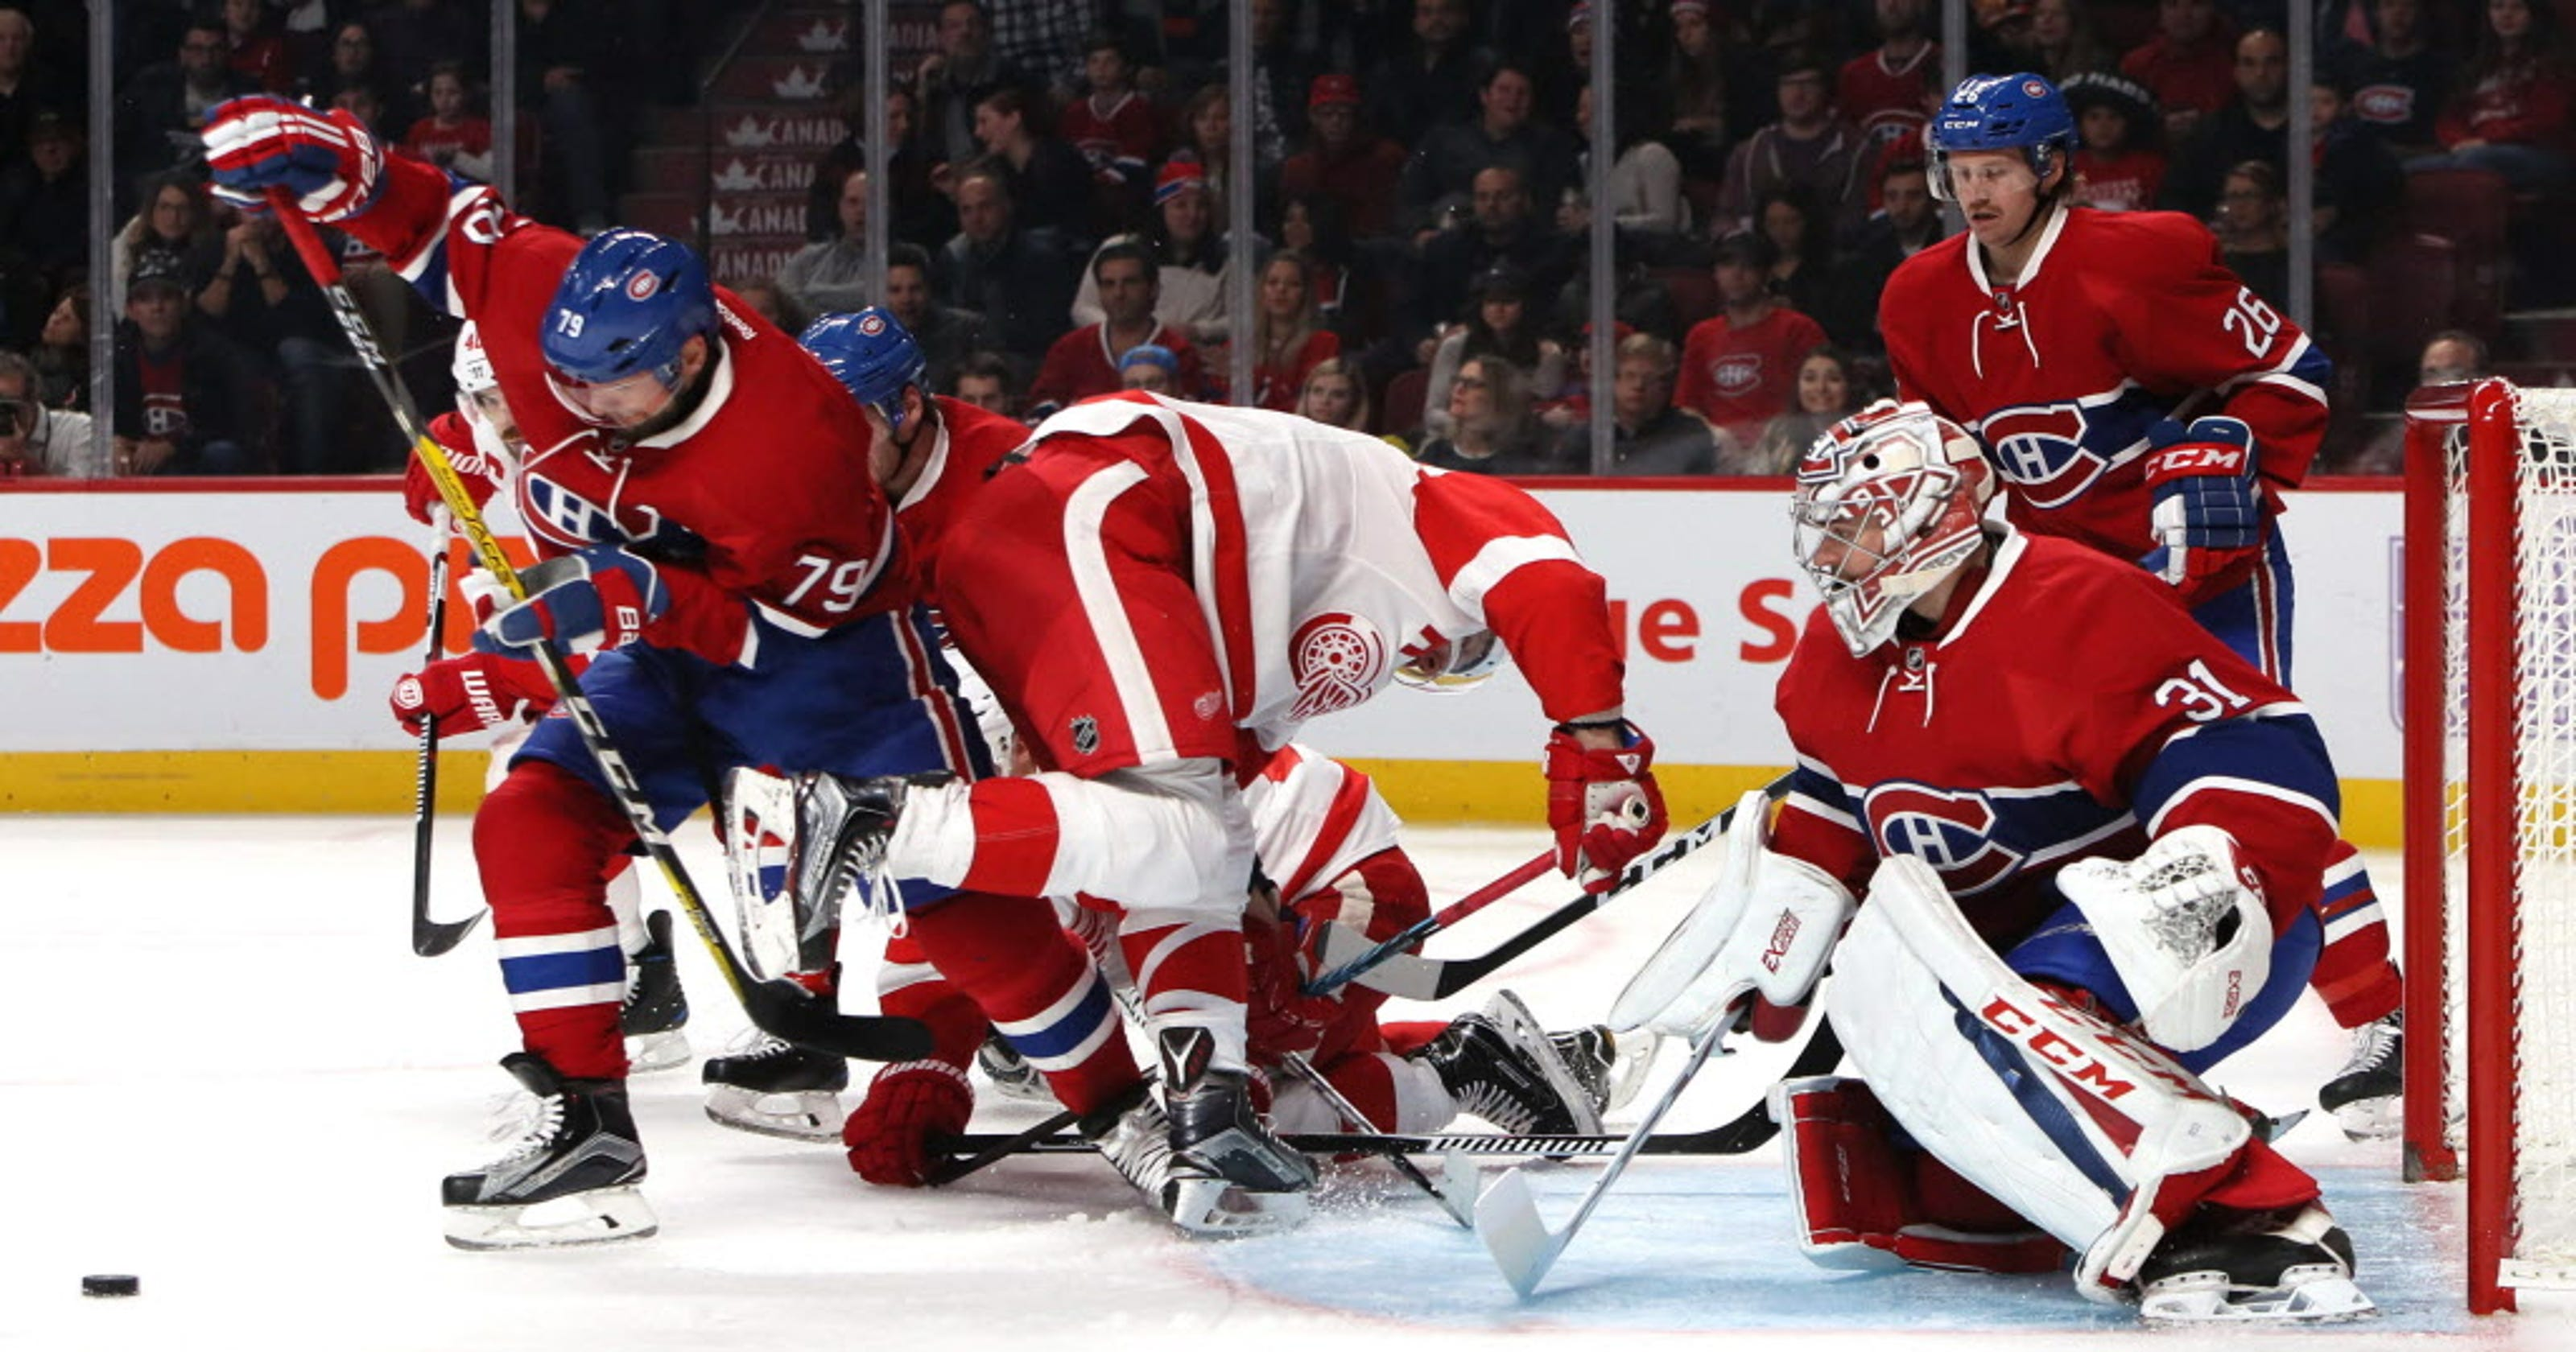 b48071999ce Canadiens make franchise history with shutout win vs. Red Wings